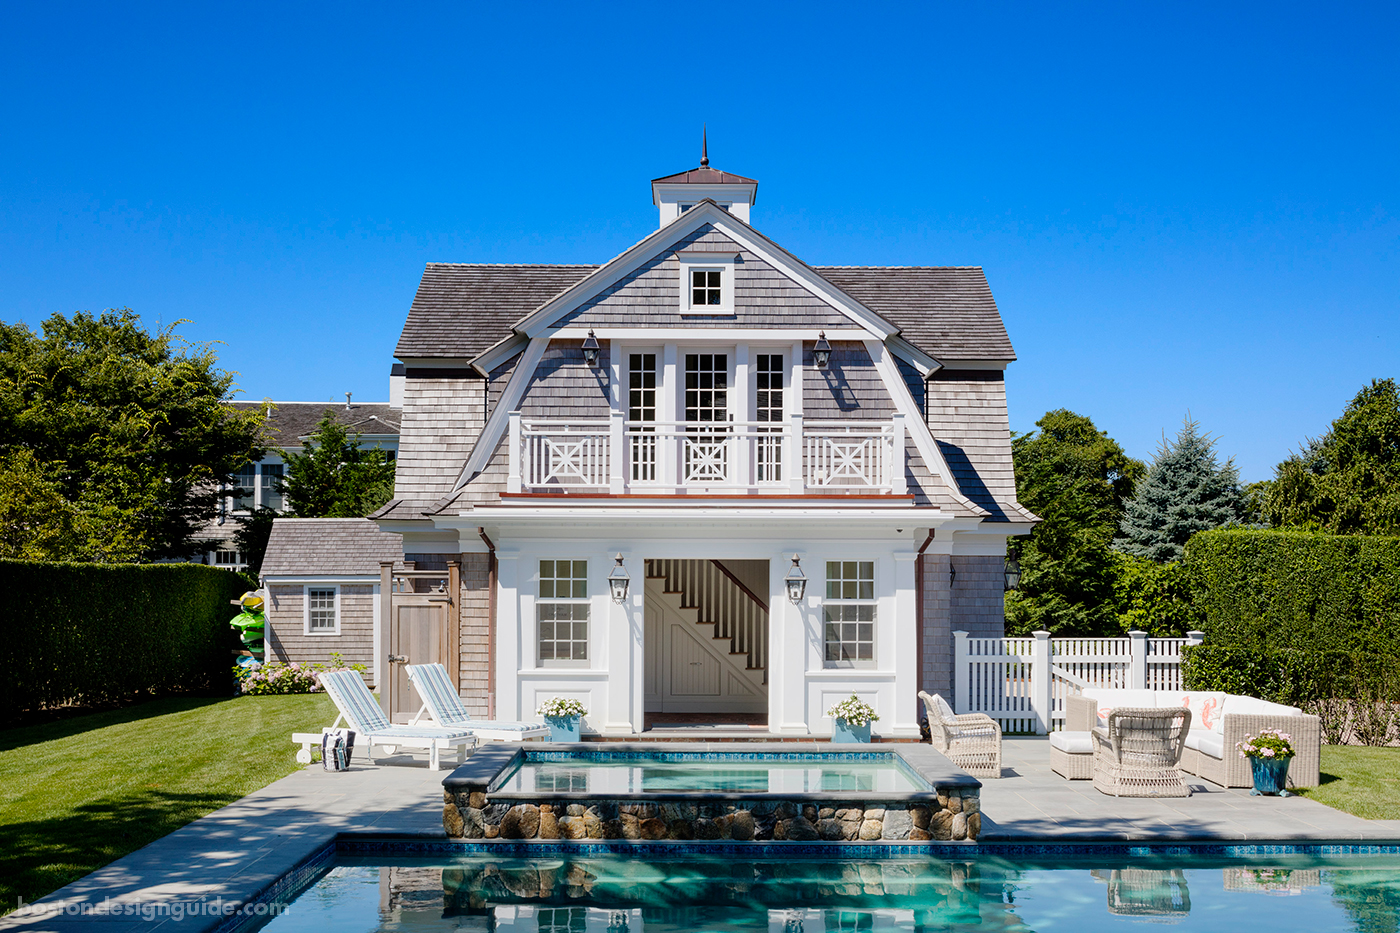 high-end Boston architects, pool cabana and carriage house